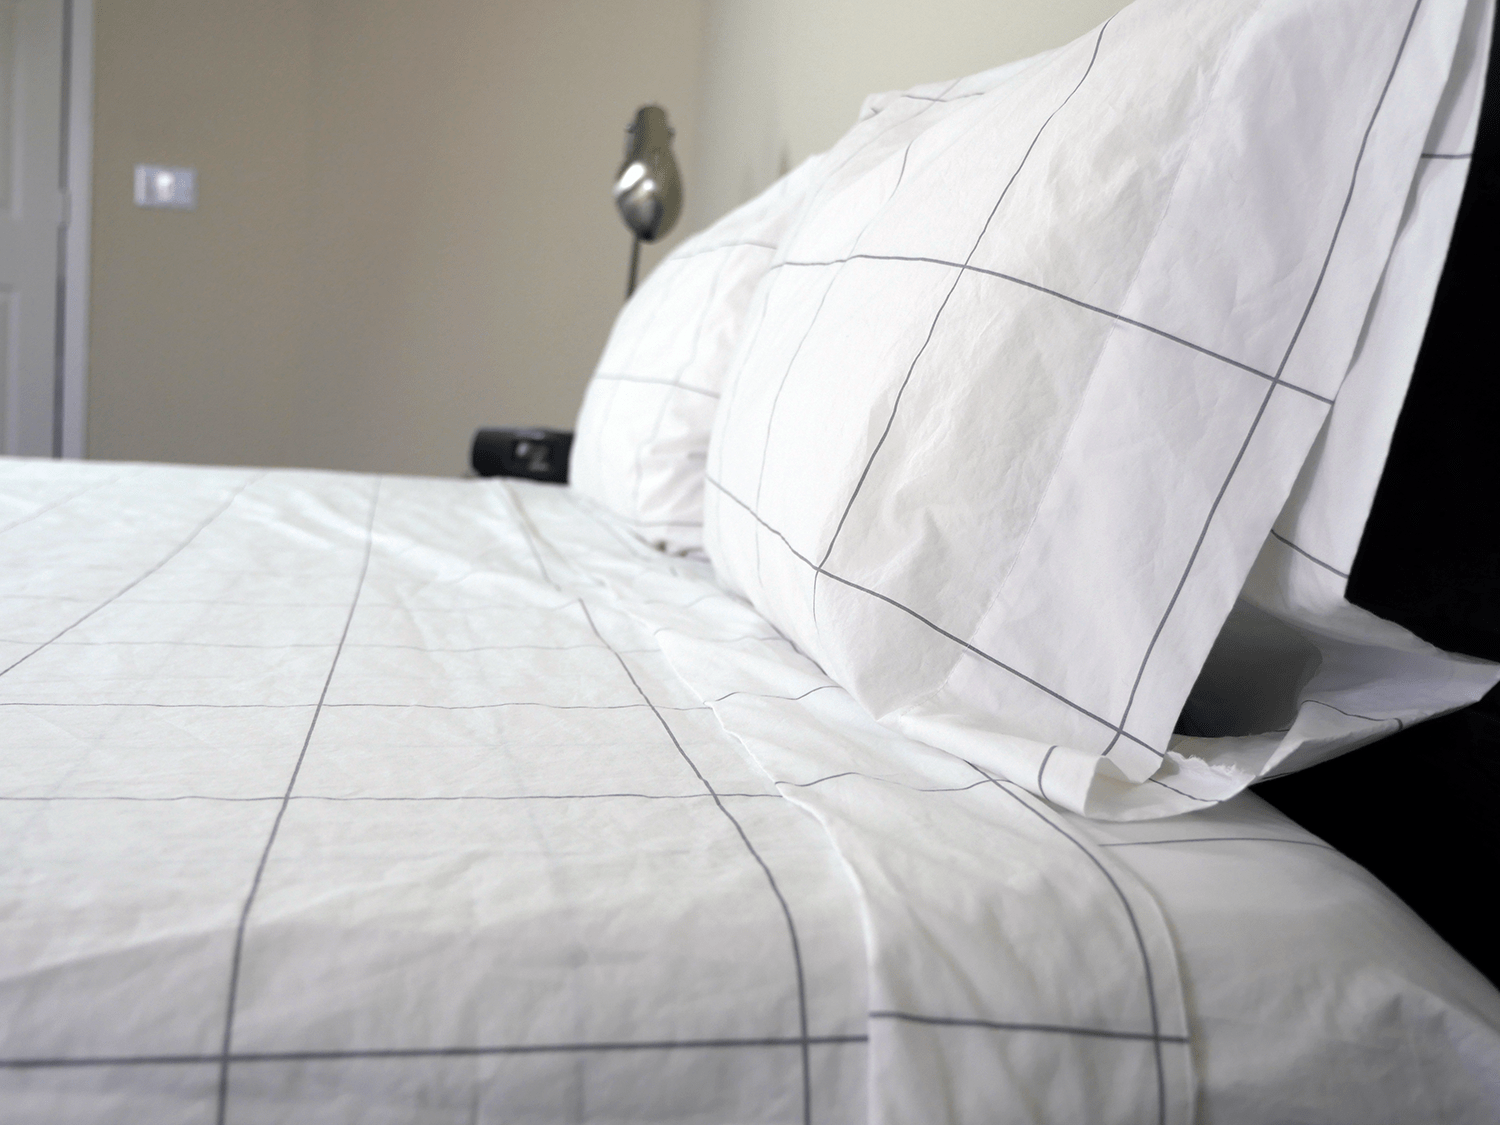 brooklinen-sheets-profile Bed Sheets Ultimate Guide — What Are the Best Types, Materials, and Weaves?